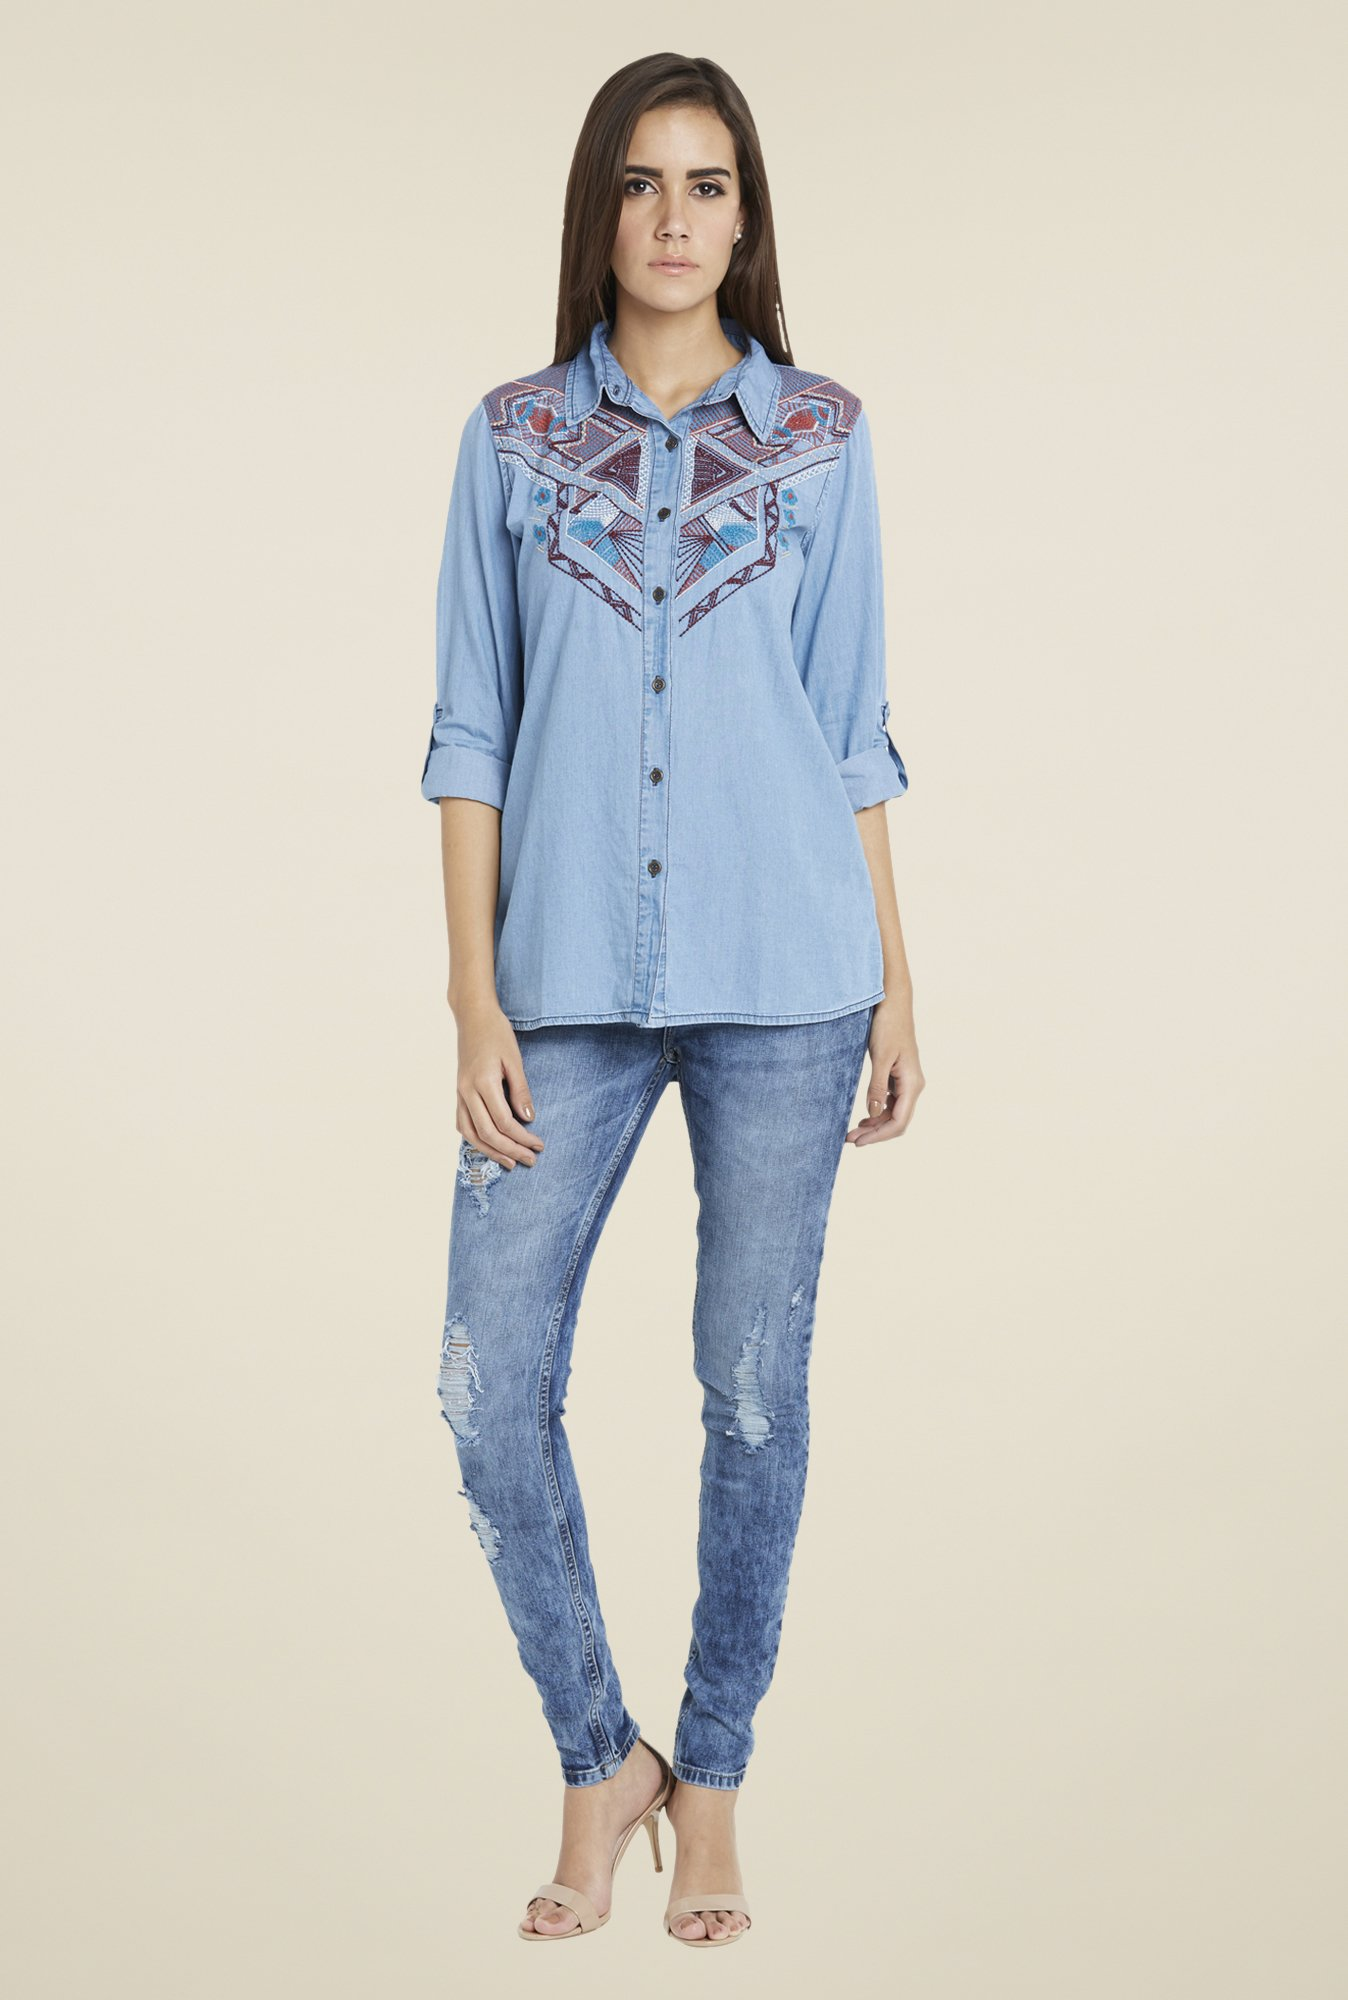 Globus Blue Embroidered Shirt